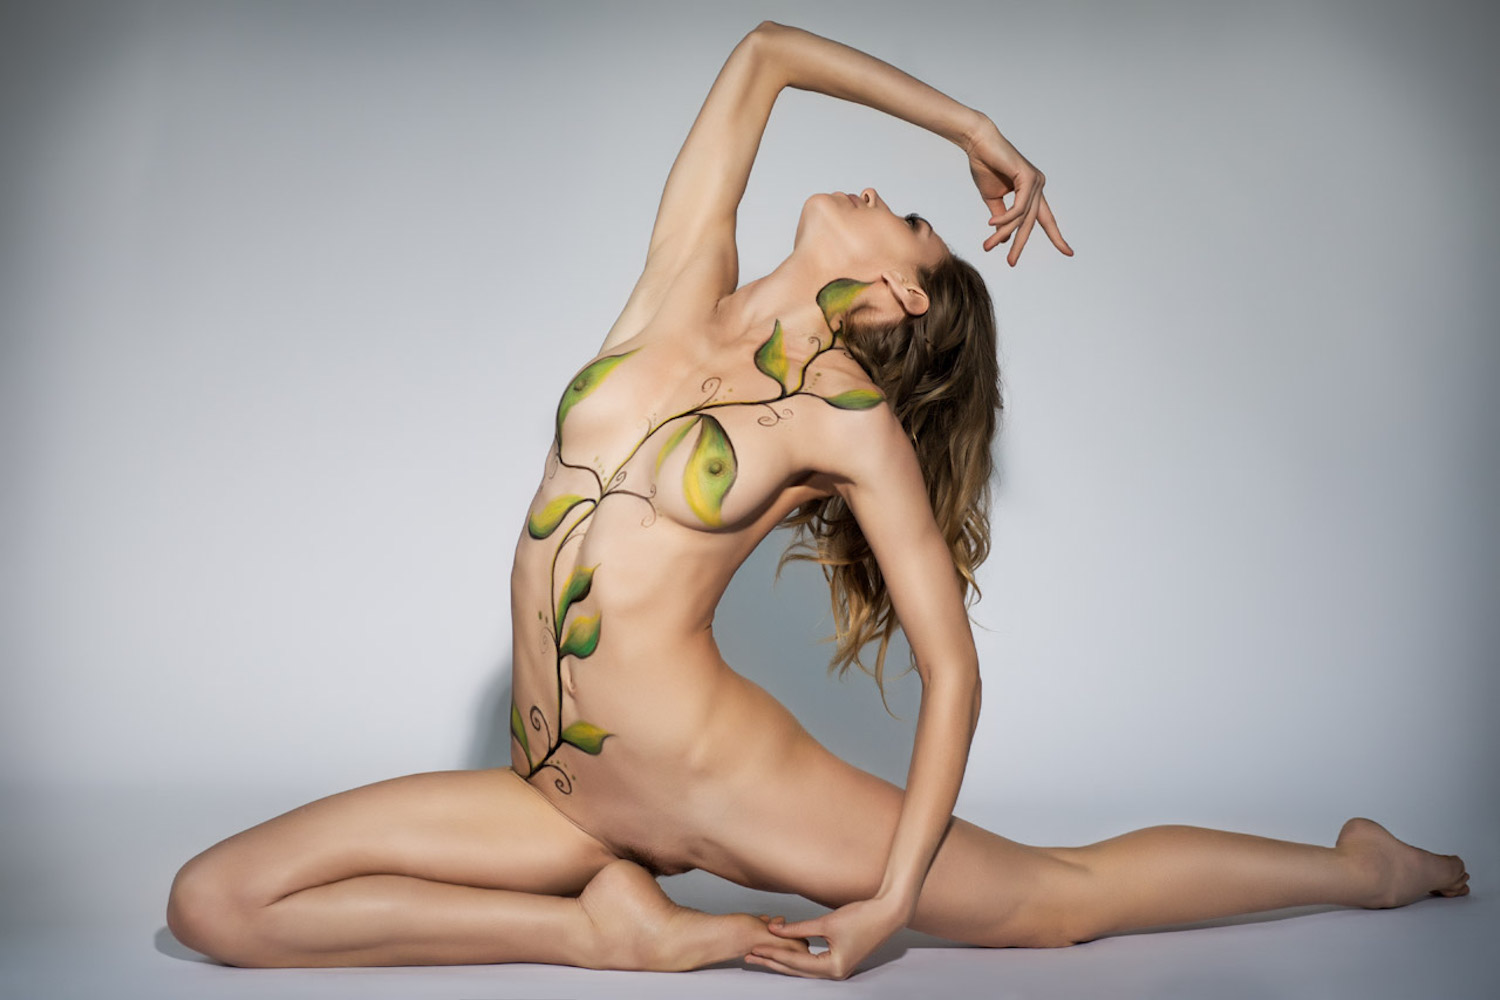 Nude Showcase: Of Earth and Air